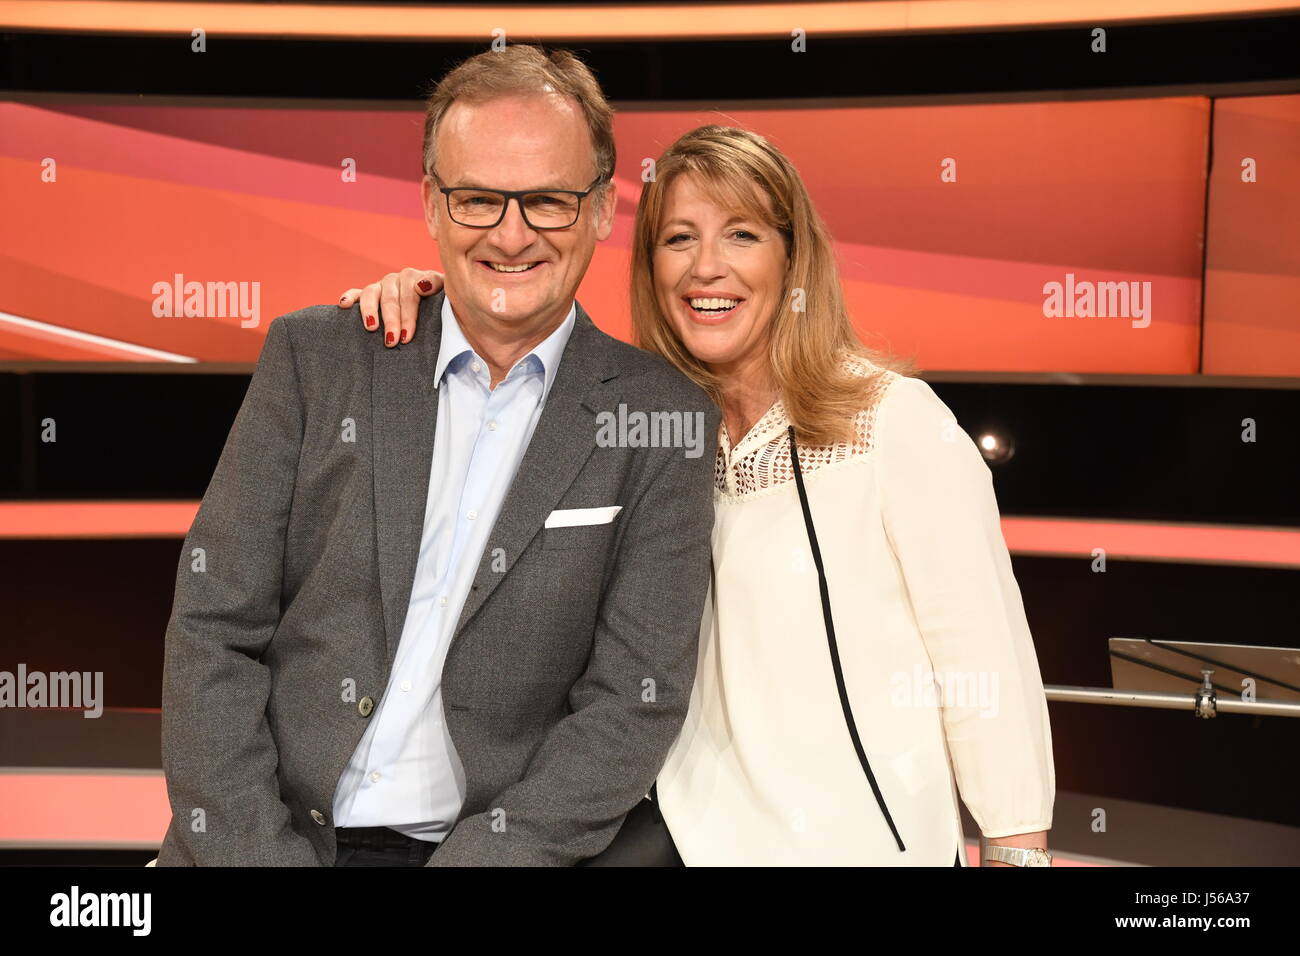 Anne gesthuysen stockfotos anne gesthuysen bilder alamy for Moderatoren ndr talkshow